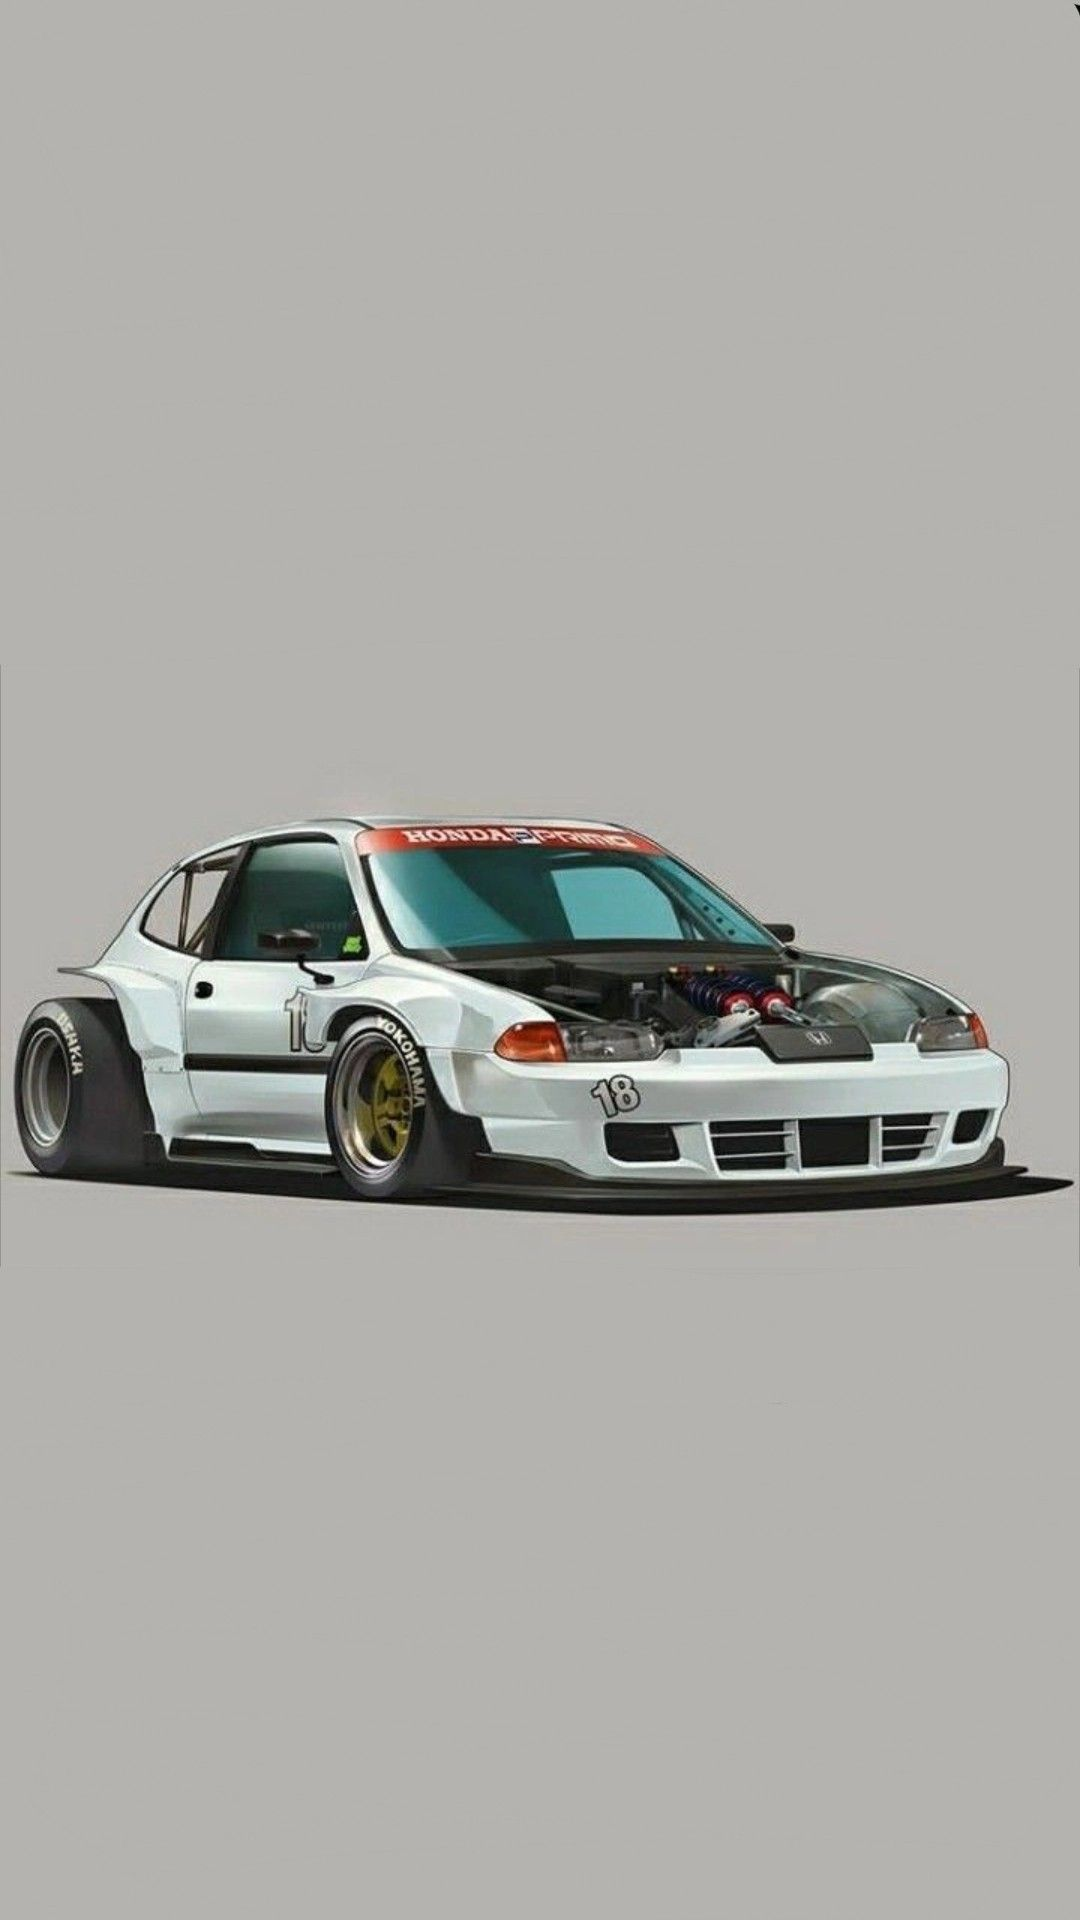 Pin By Md Syamim On Cartoon Jdm Car With Images Jdm Cars